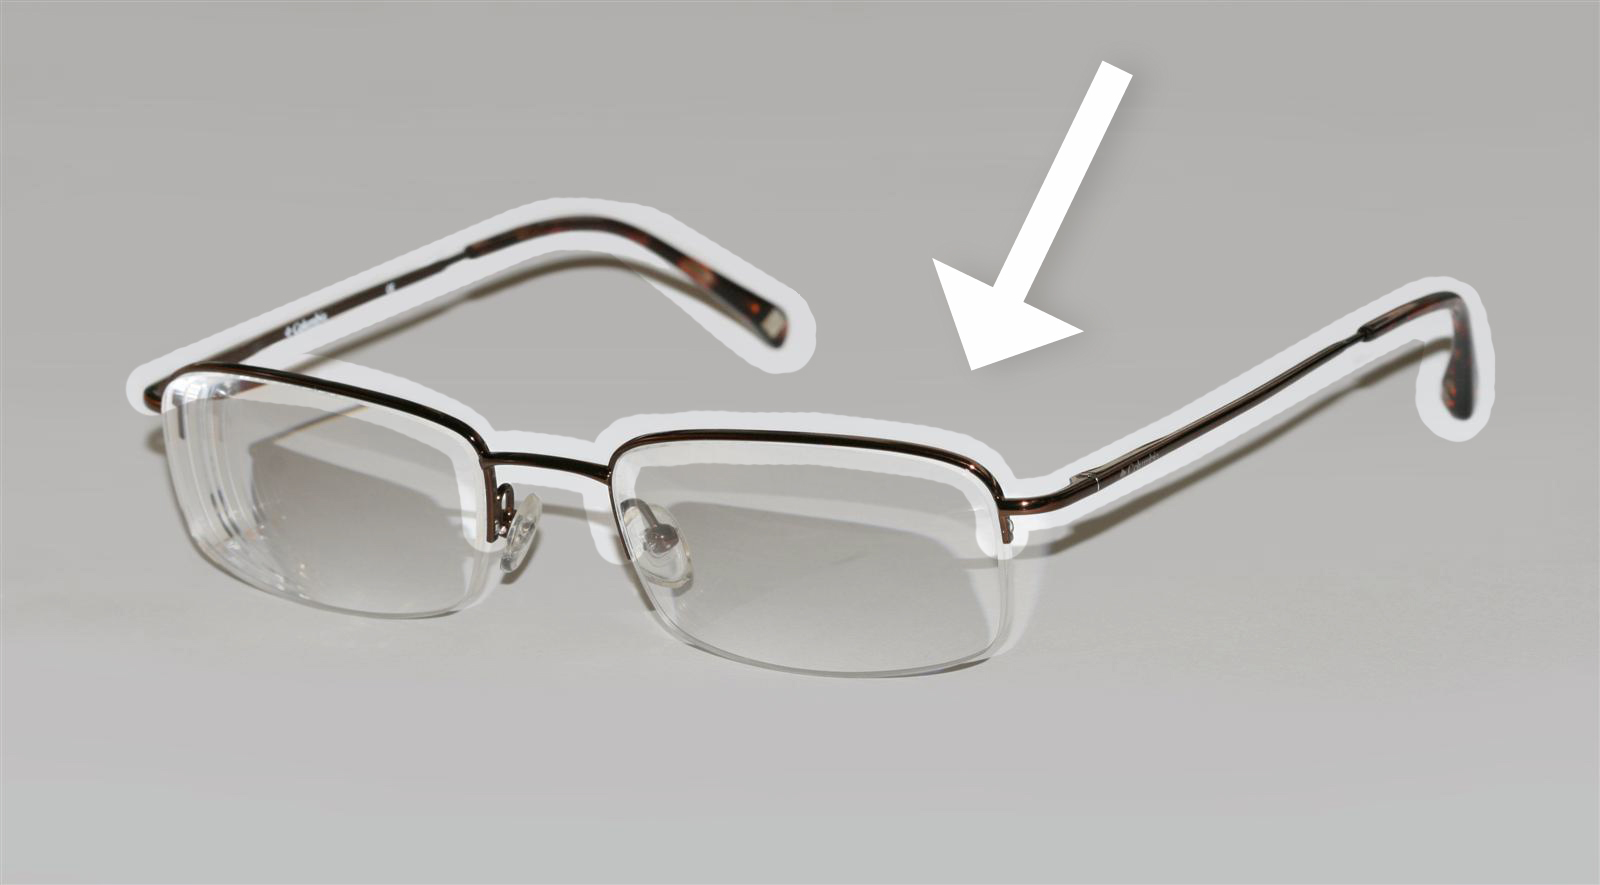 File:Half rim glasses with frame highlighted.jpg ...